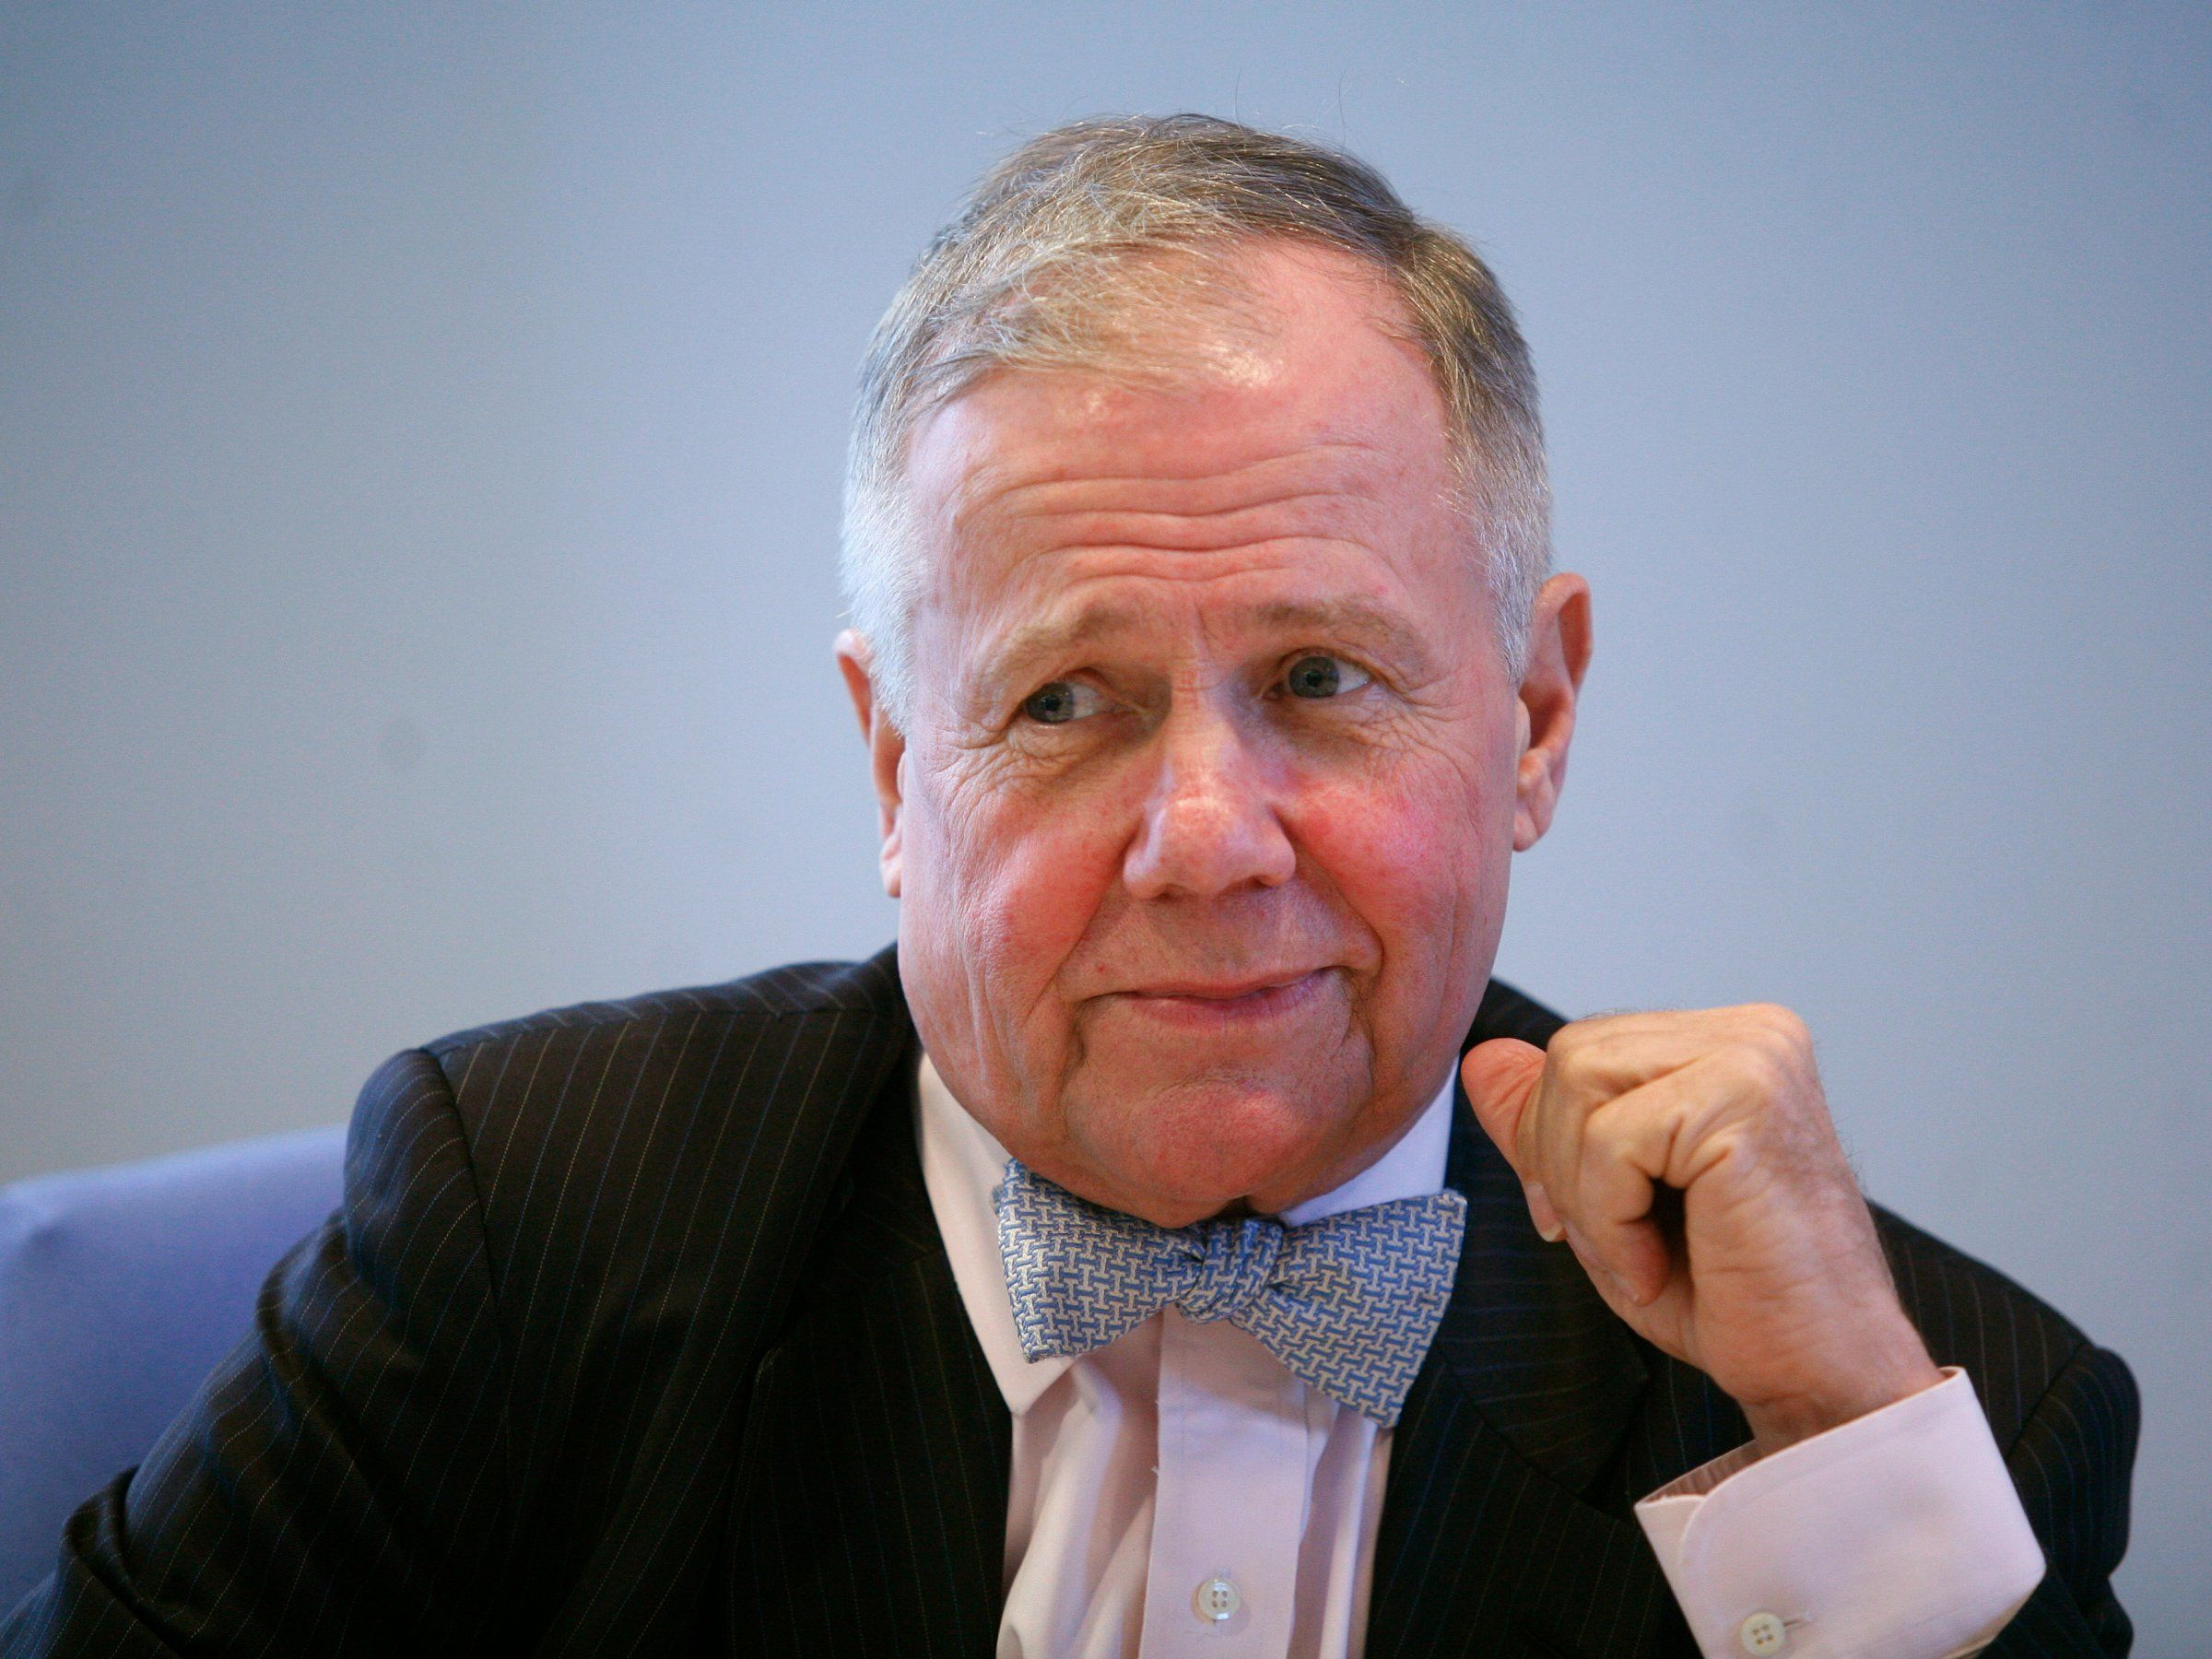 JIM ROGERS The US dollar might turn into a bubble